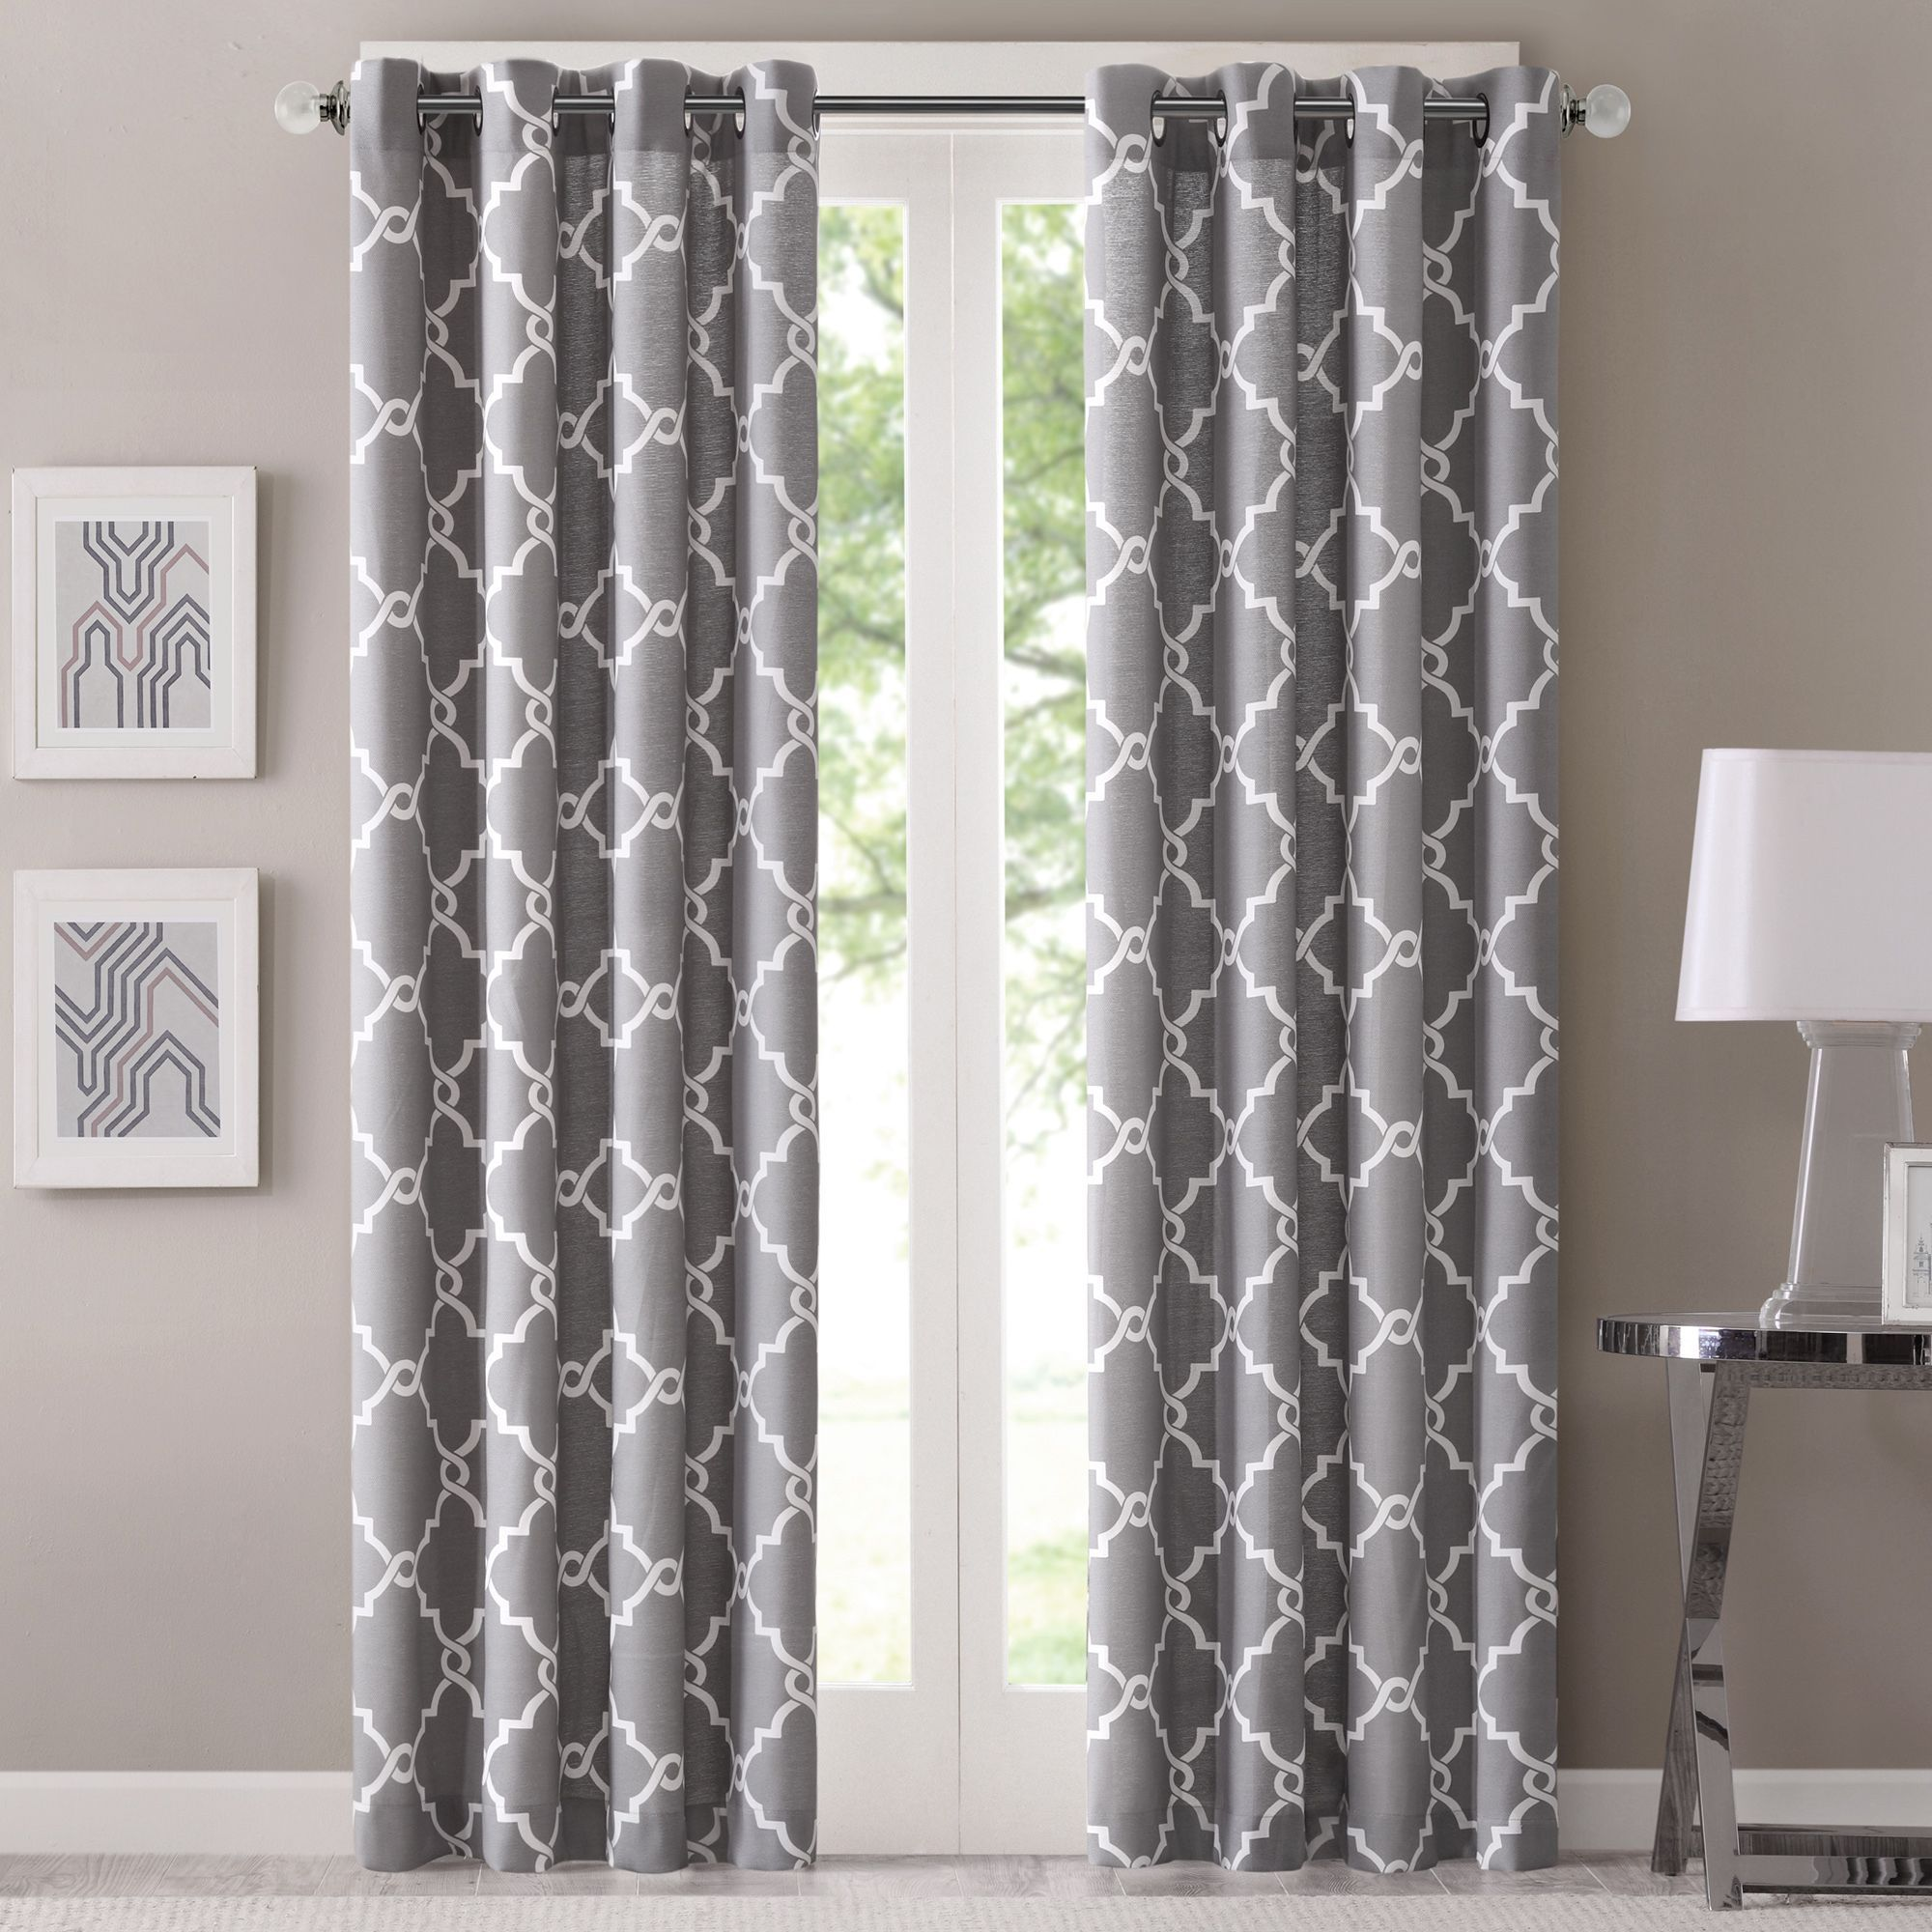 Refresh Your Room With The Decorative Fretwork Window Panel Scroll Geometric Print Is Simple